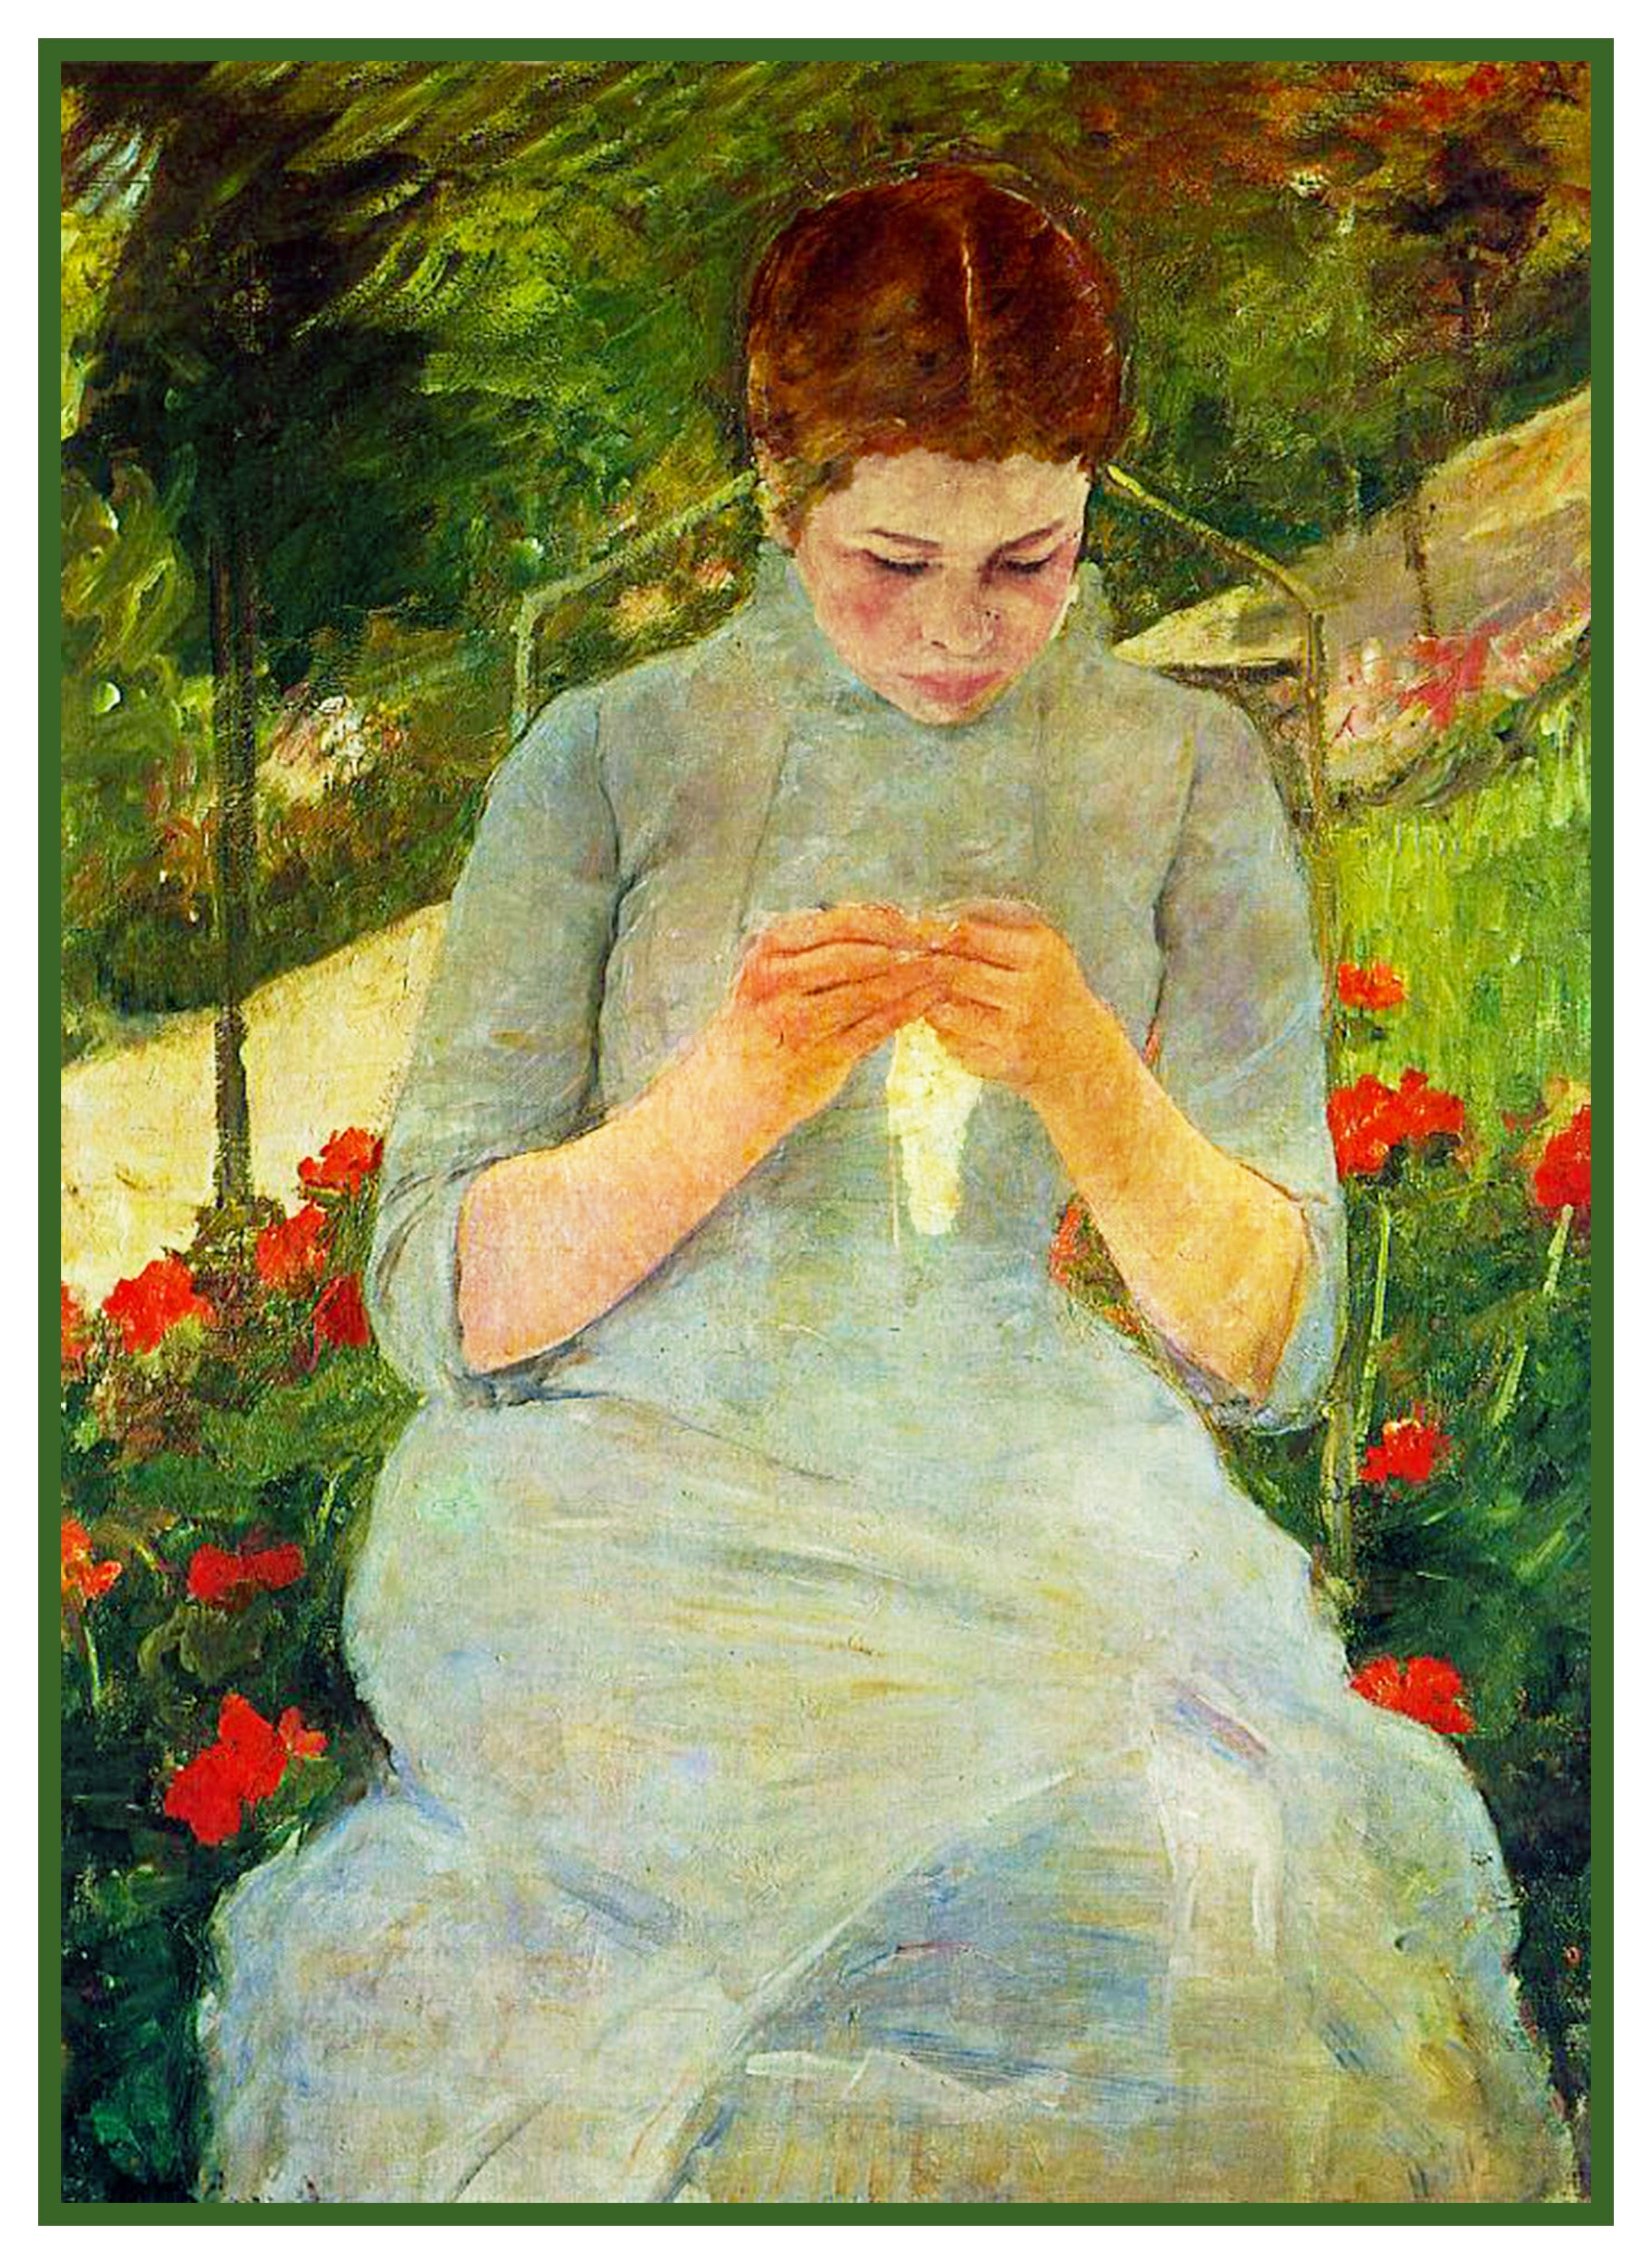 Woman Sewing In The Garden By American Impressionist Artist Mary Cassatt Counted Cross Stitch Or Needlepoint Pattern